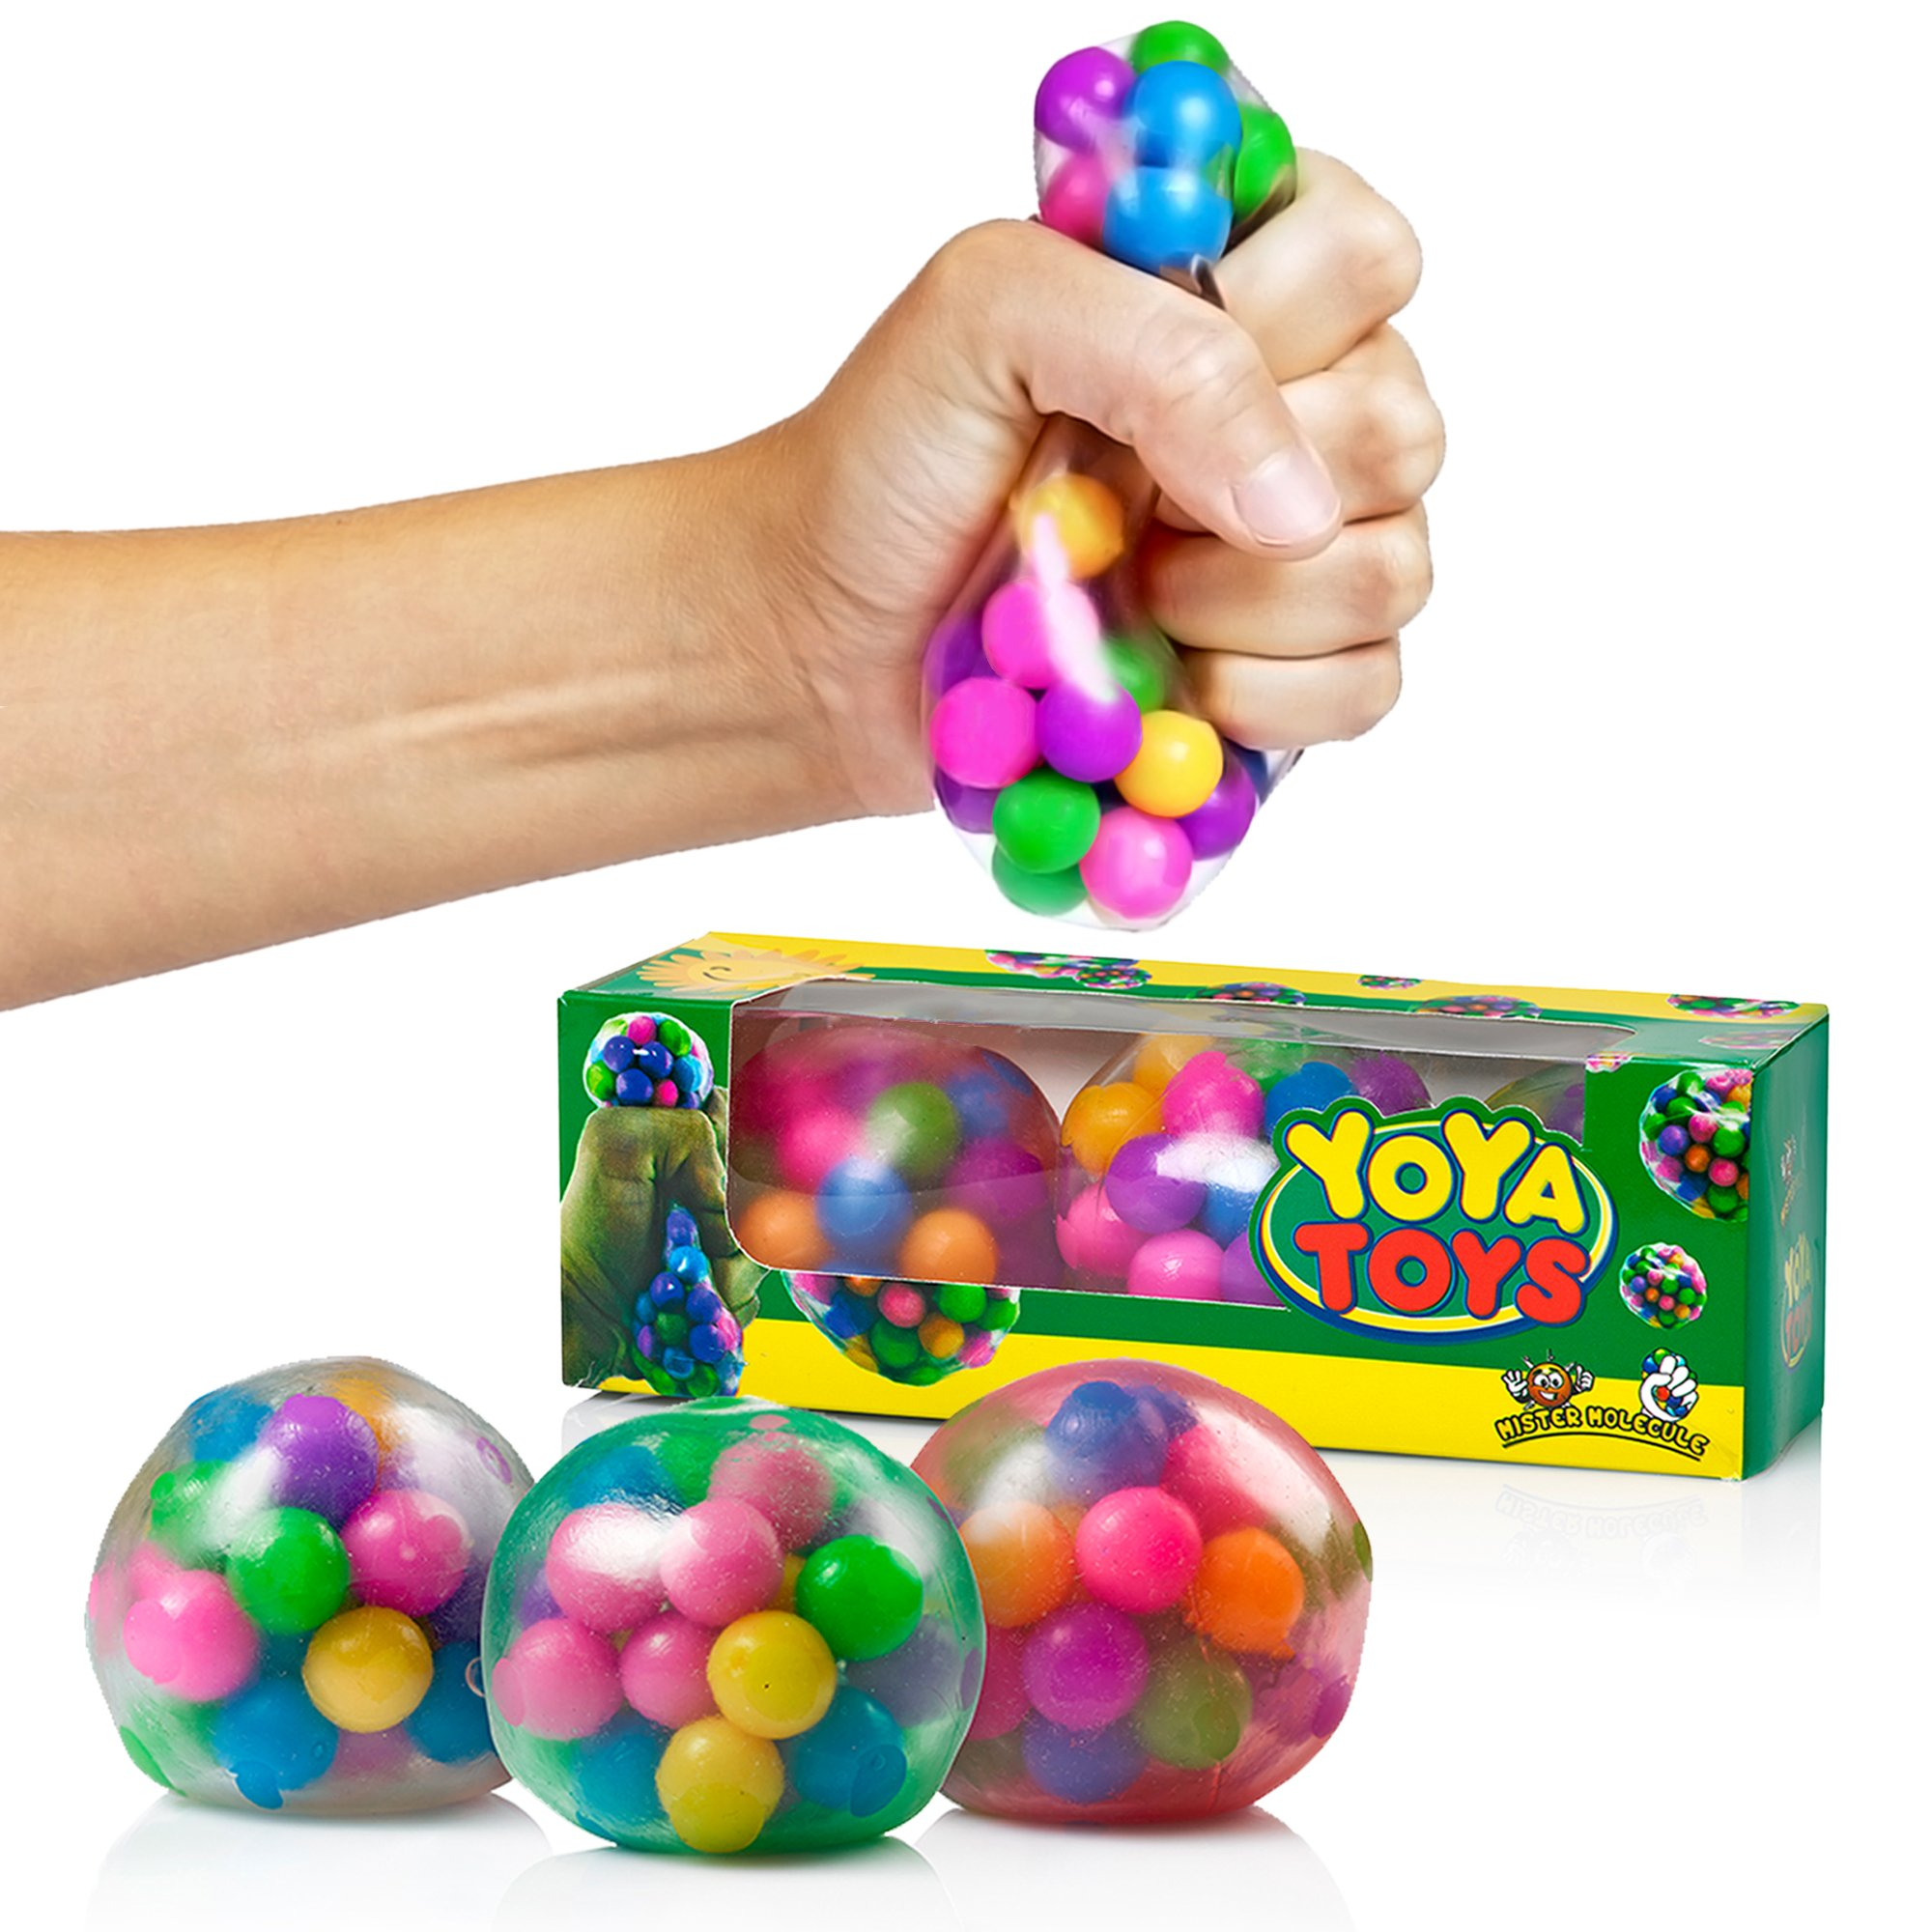 Sensory Toys For Adults : Dna stress ball by yoya toys pack squeezing